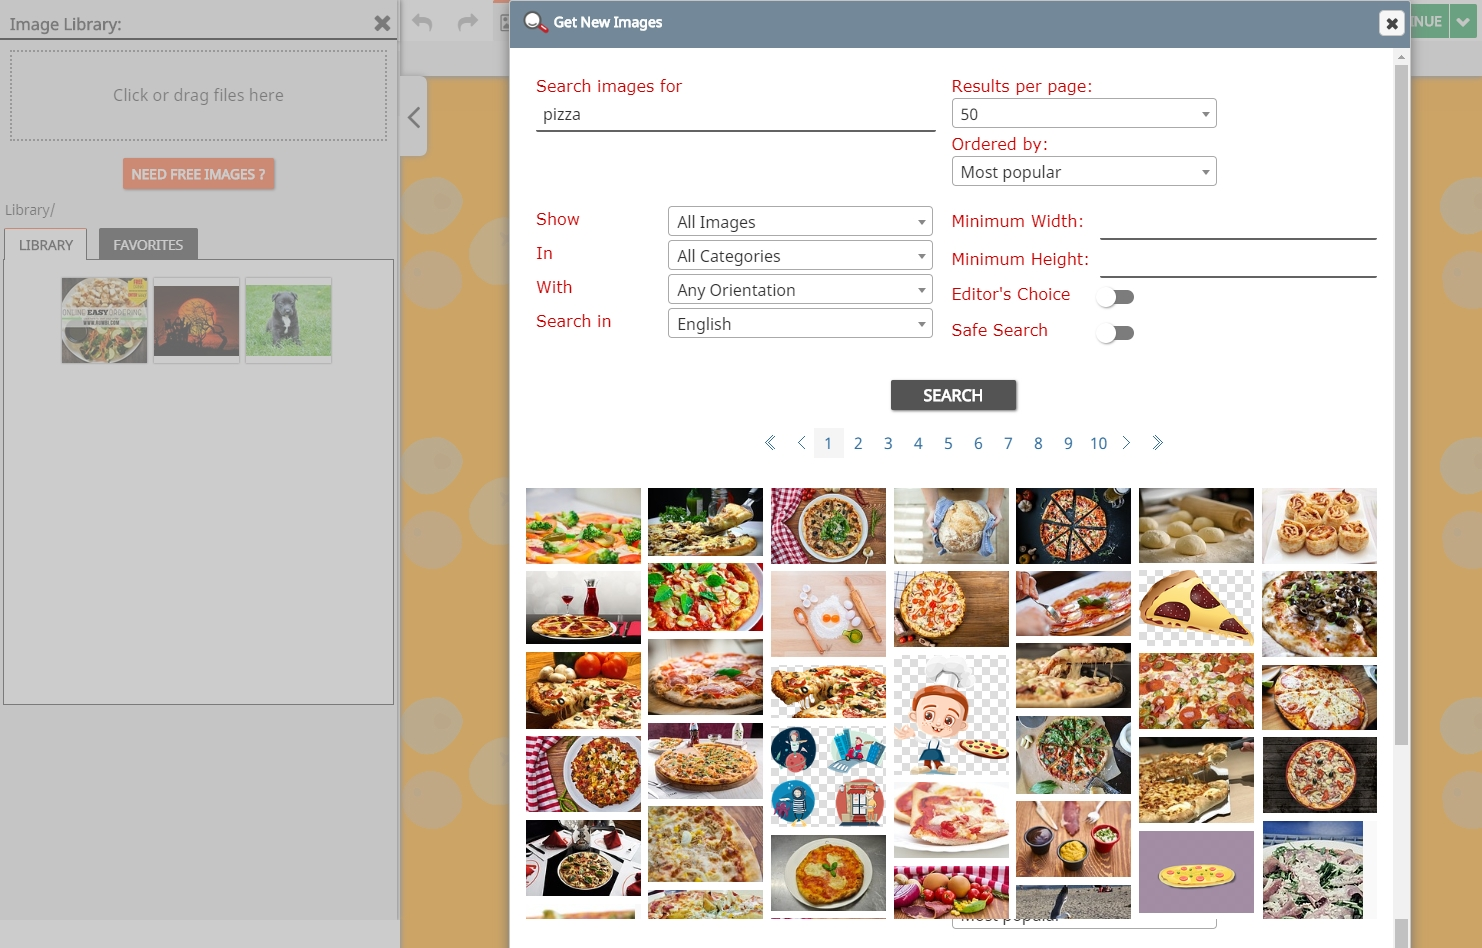 FireDrum Email Marketing Demo - Free image database with image editing tools